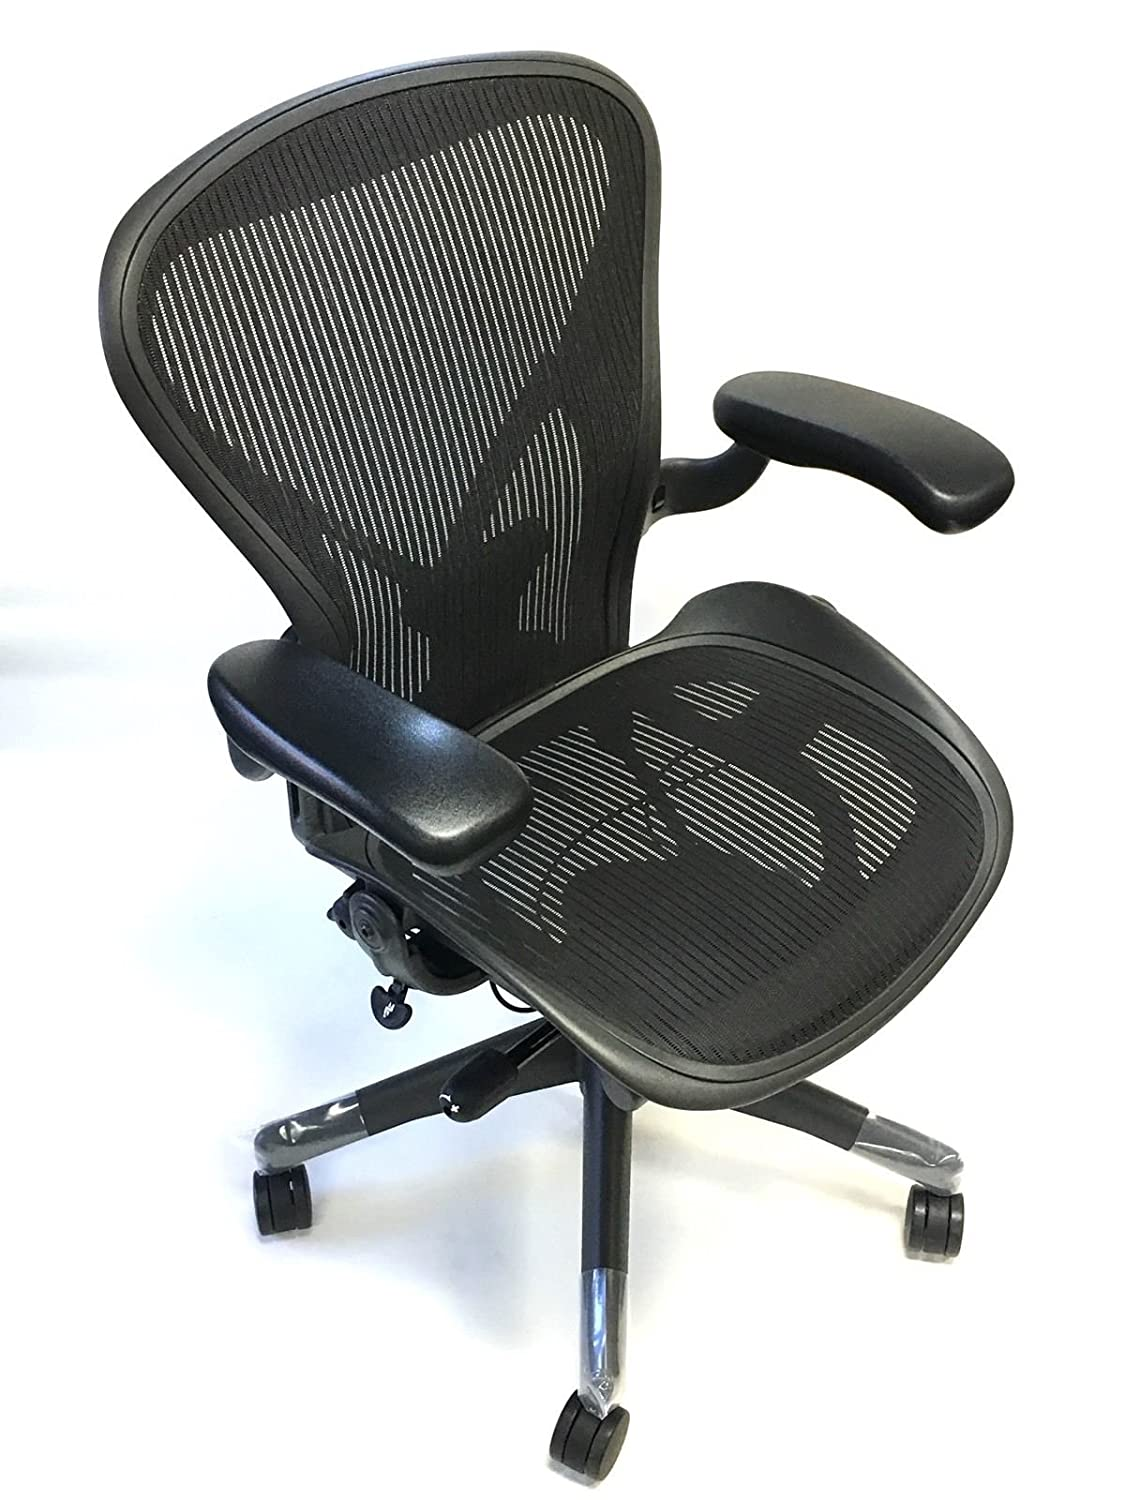 Astonishing Amazon Com Herman Miller Aeron Chair Size B Fully Loaded Ocoug Best Dining Table And Chair Ideas Images Ocougorg